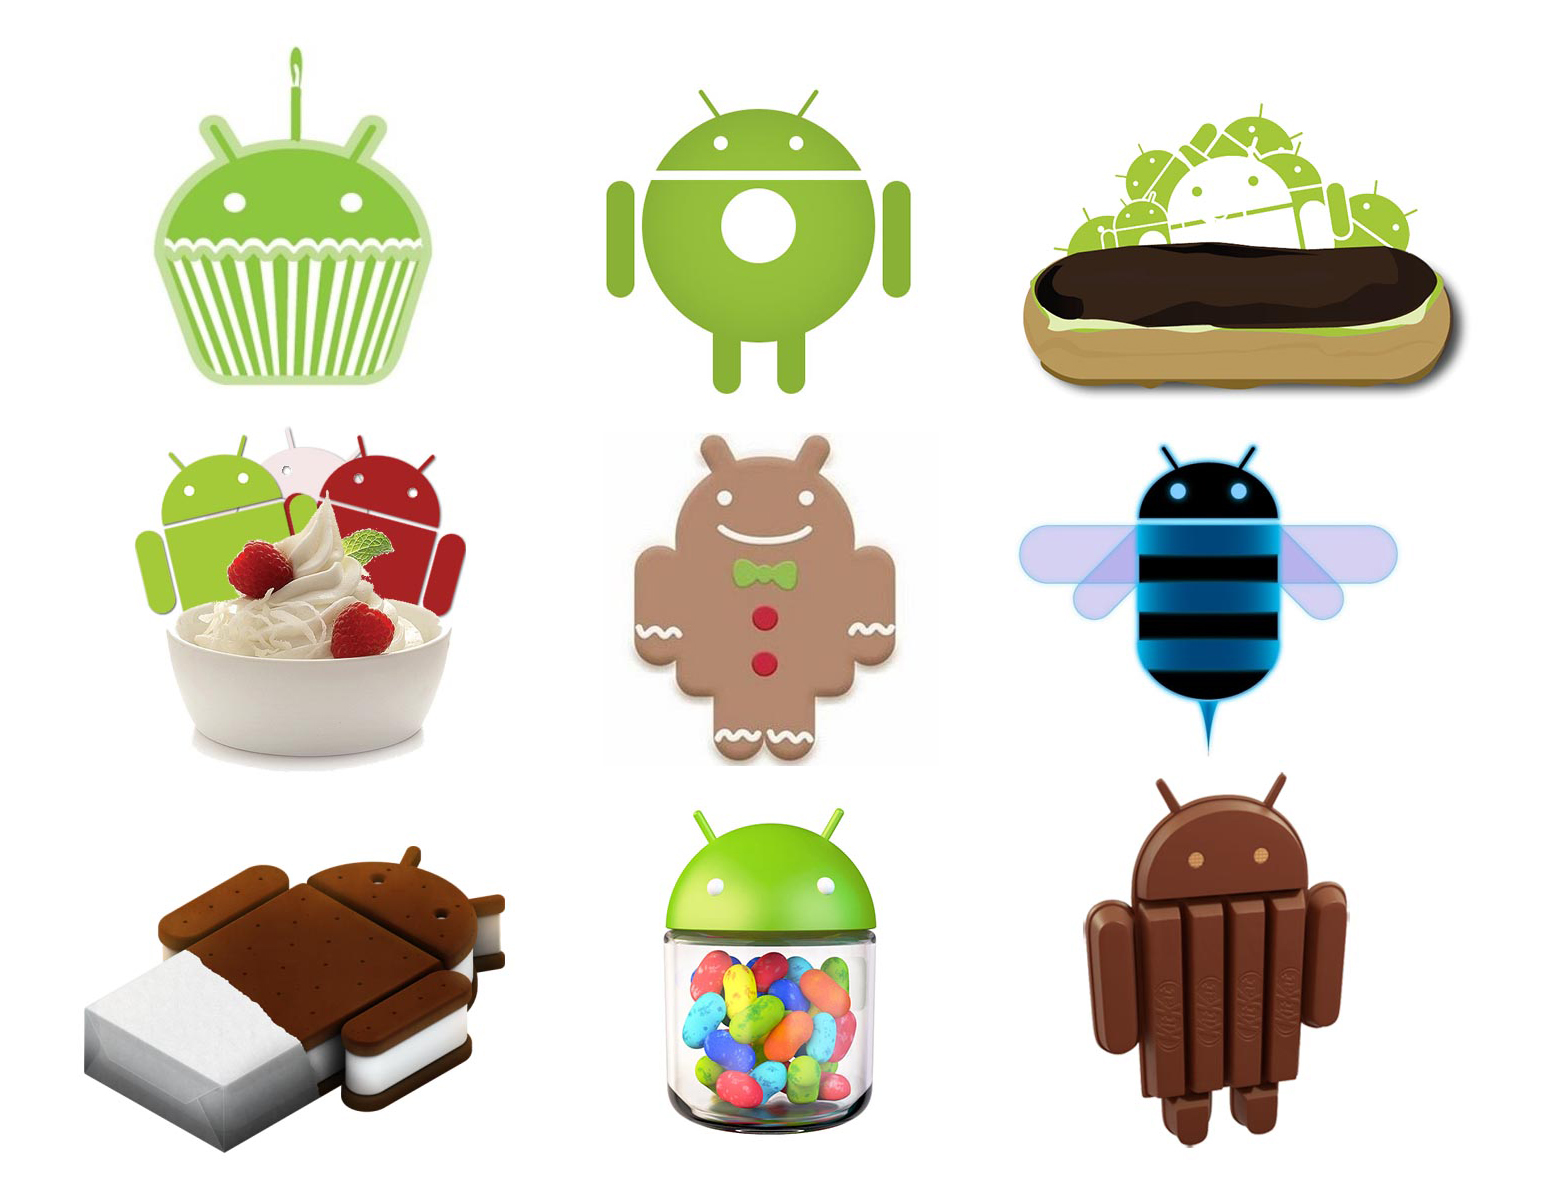 Dig Out the Successful Journey of Android from Version 1.0 to KitKat 4.4 - Image 1